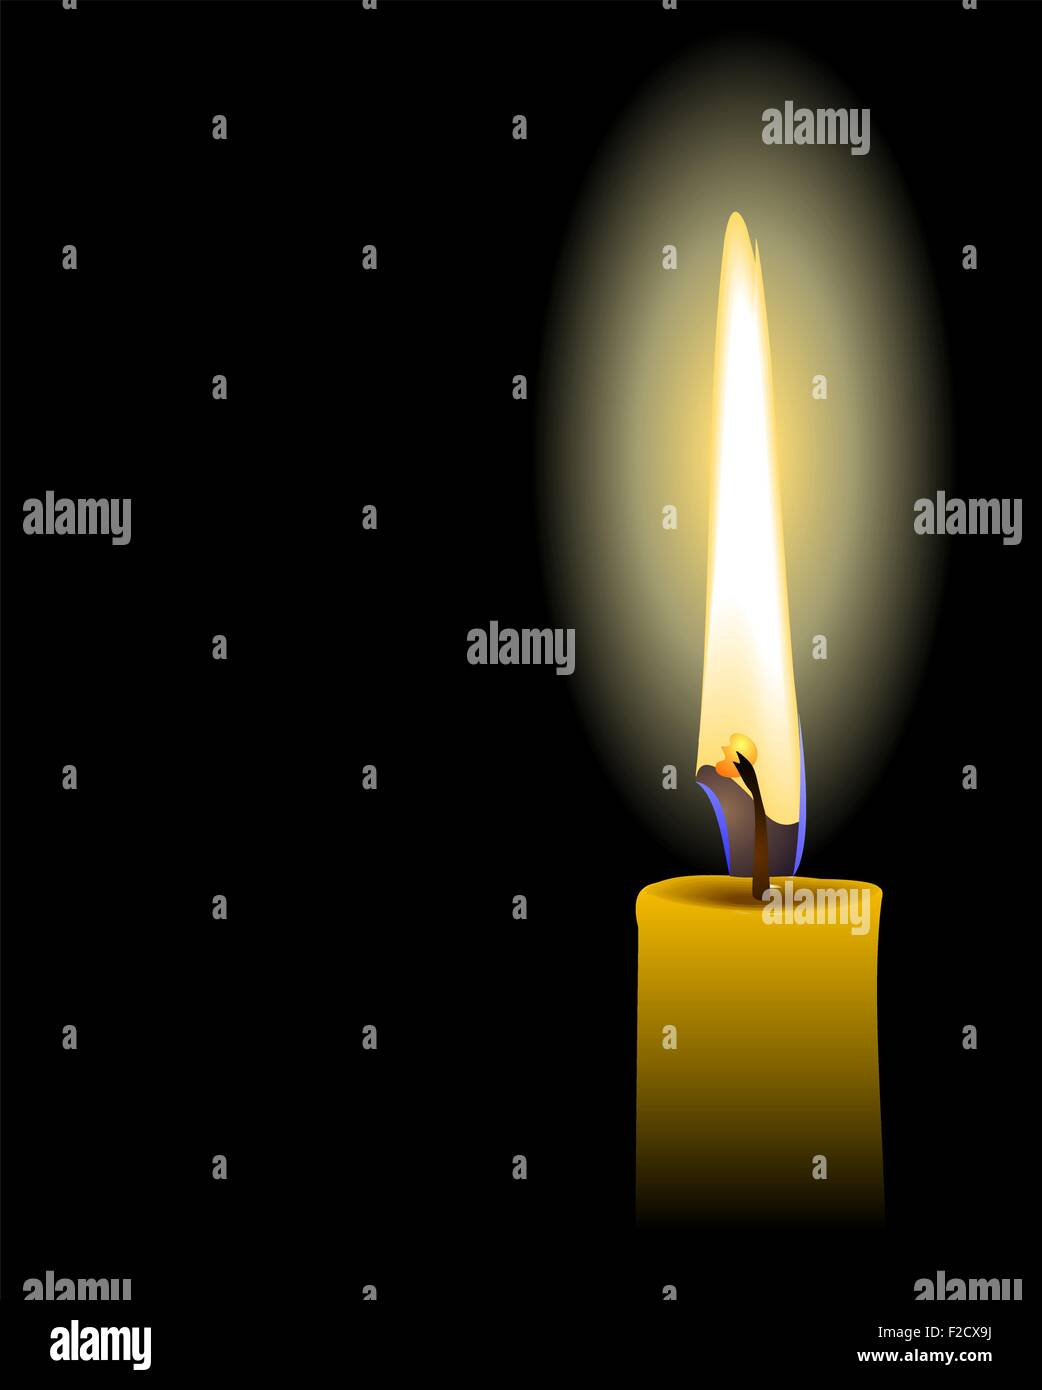 Illustration of yellow candle isolated on black background - Stock Vector